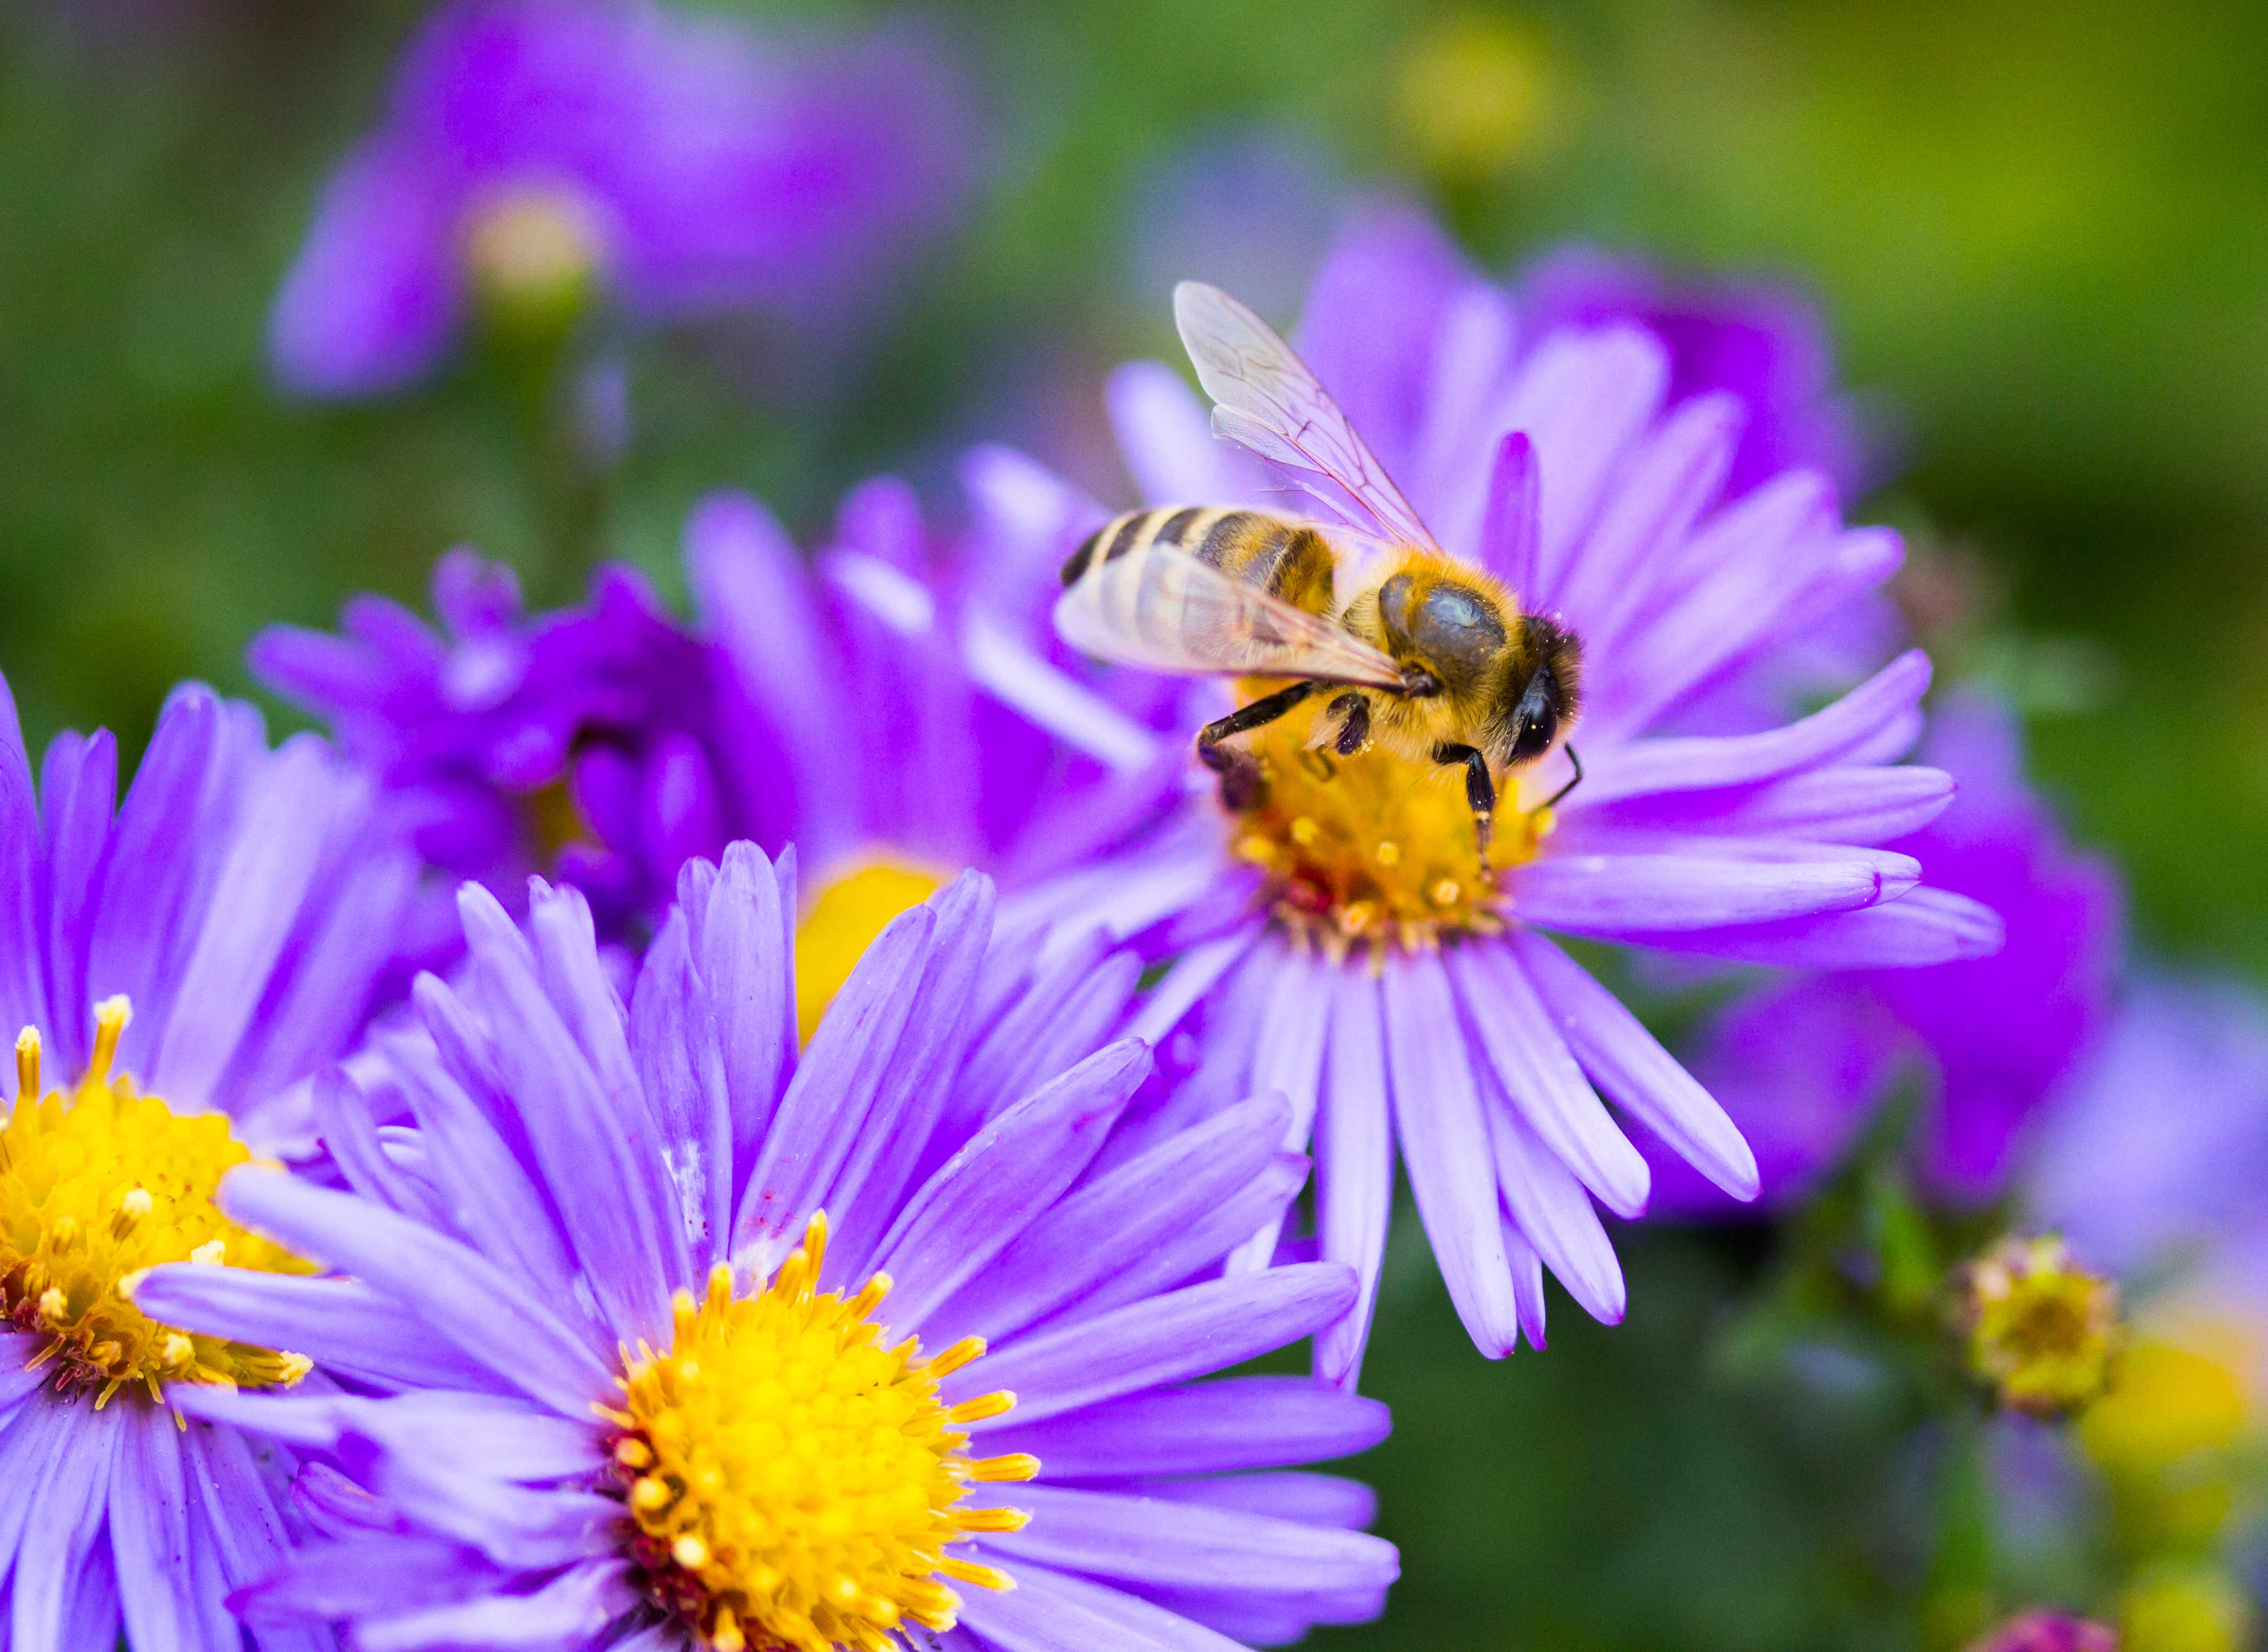 a bee on a purple flower collecting pollen